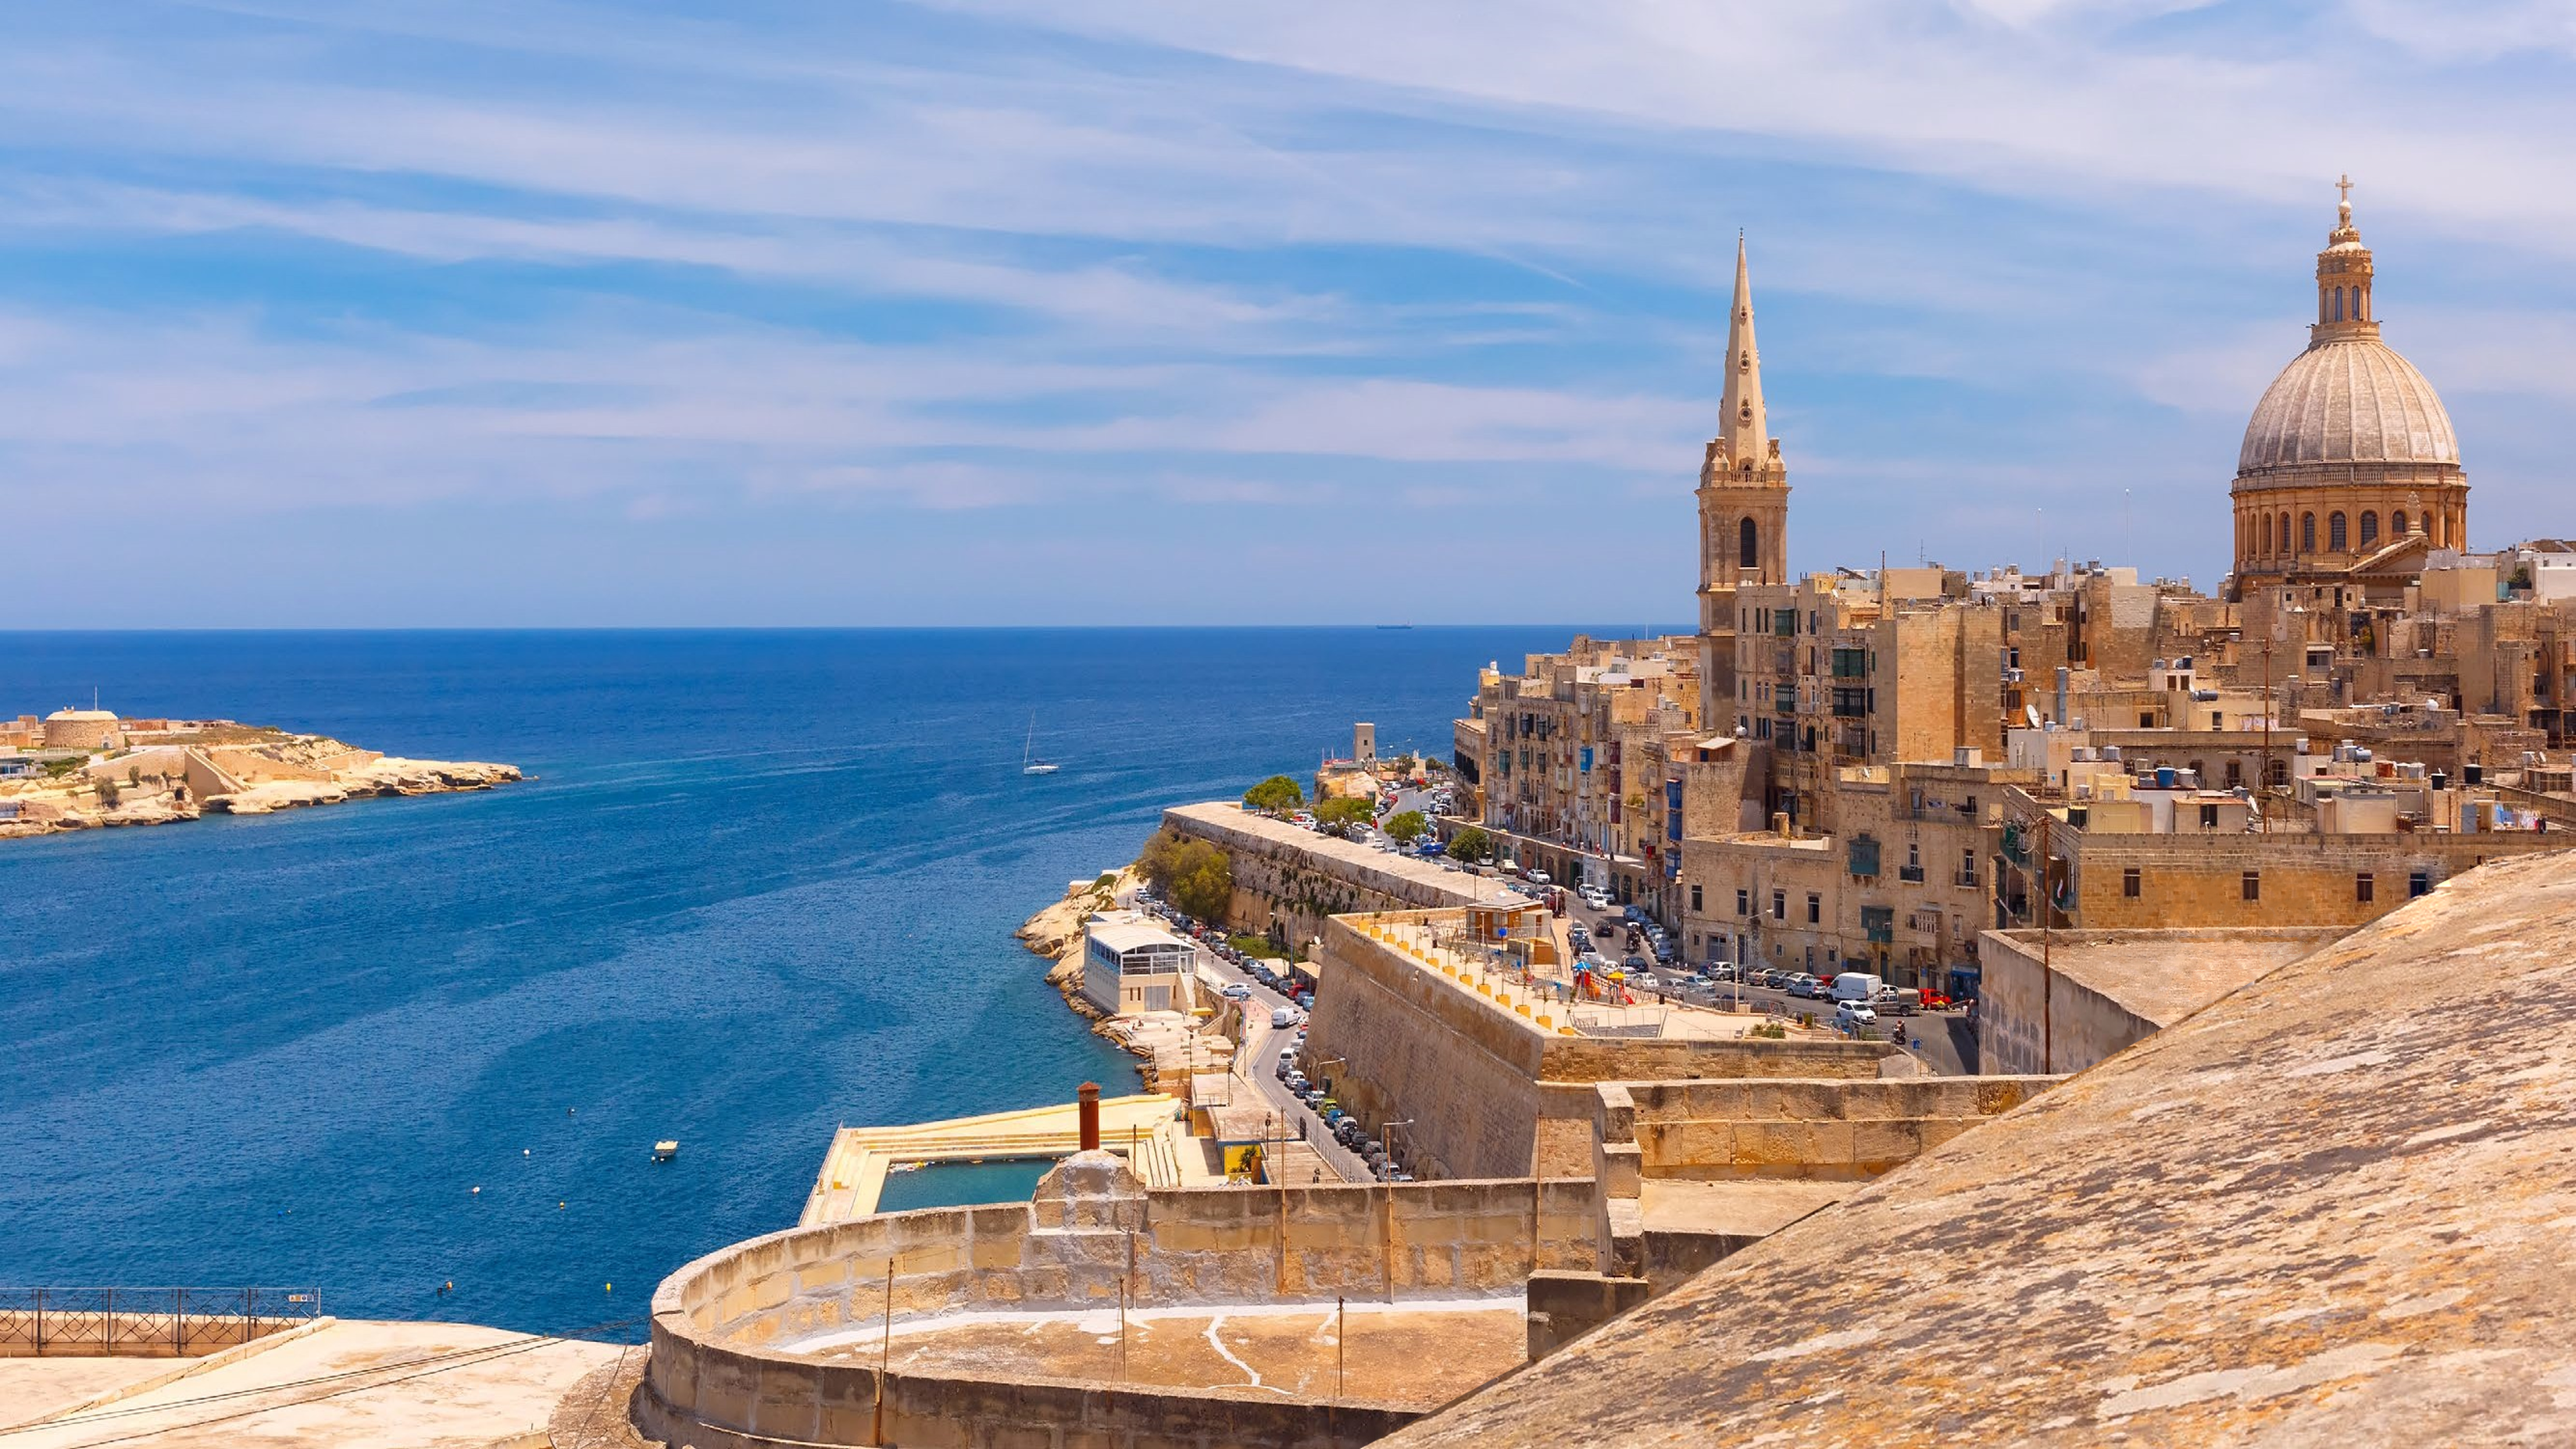 View from Valletta, Malta looking out to sea